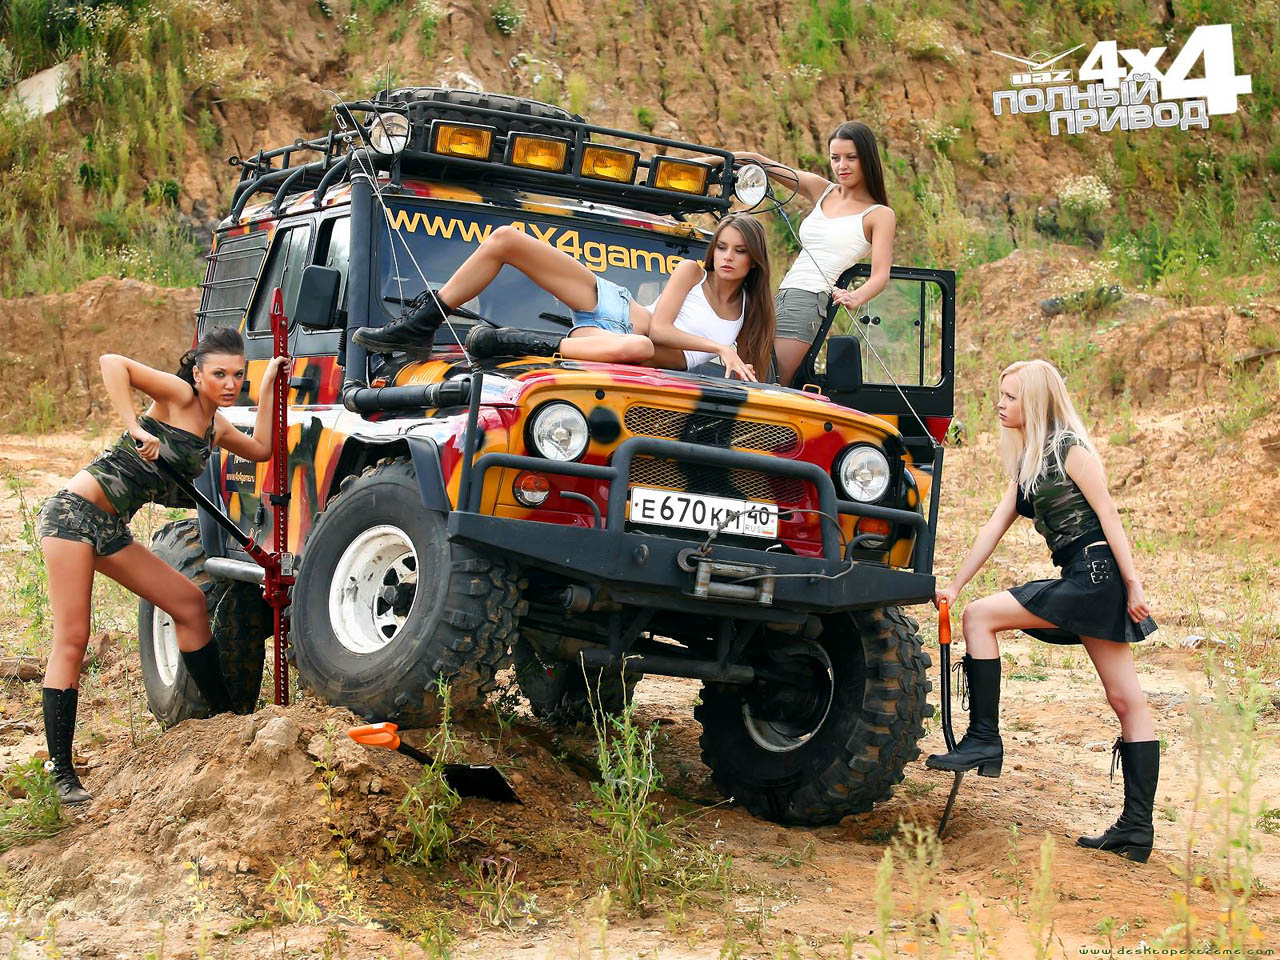 Off Road UAZ 4x4 Wallpaper by DesktopExtremecom   Wallpaper For Your 1280x960